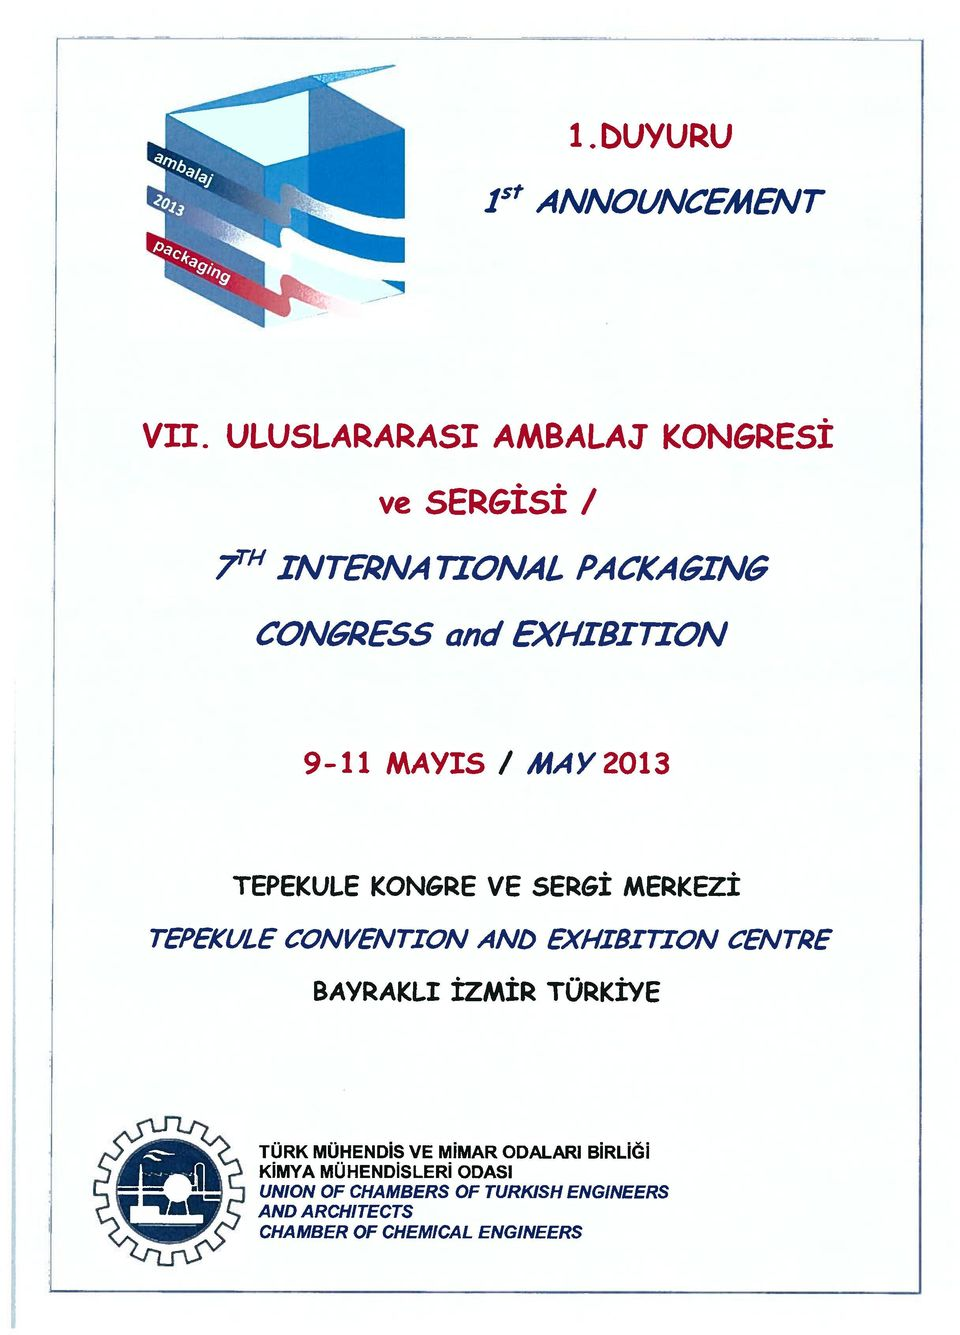 MAYIS / MAY2013 TEPEKULE KONGRE VE SERGİ MERKEZİ TEPEKLILE CONVENTION AND EXHIBITION CENTRE BAYRAKLI